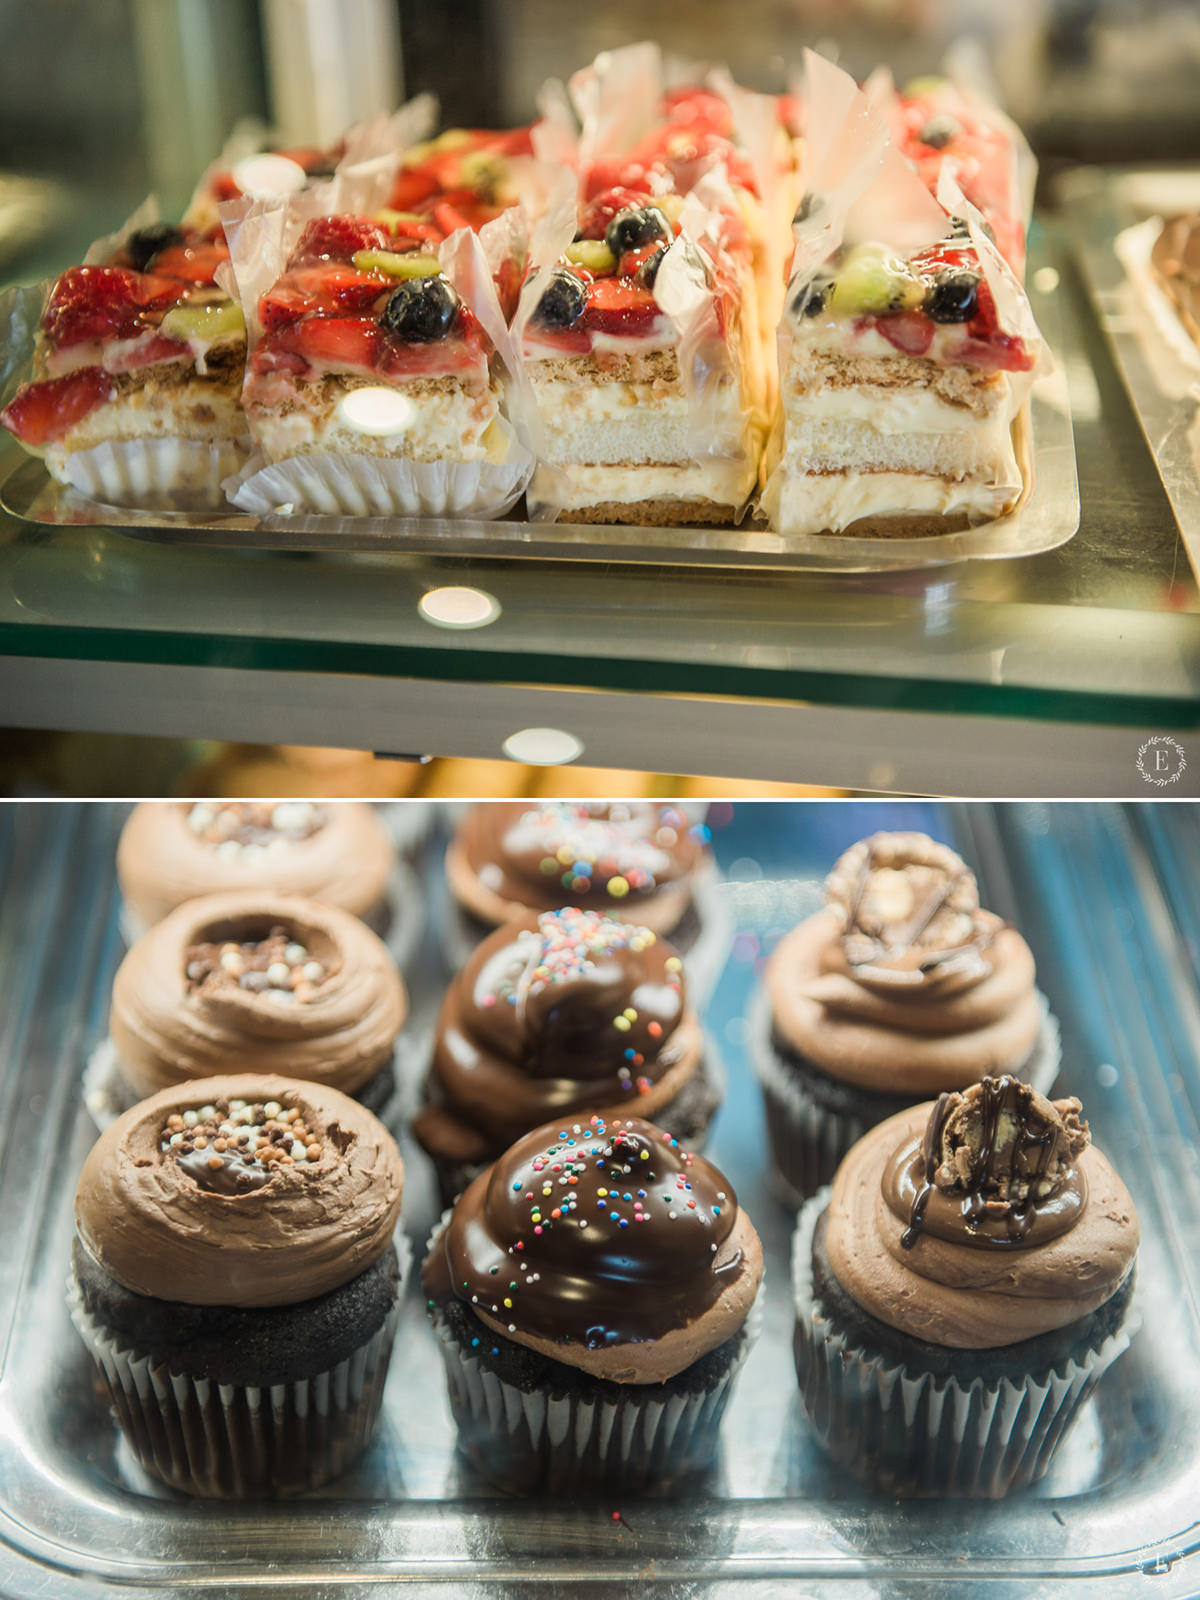 Best bakery in Toronto - Lamanna's Cafe